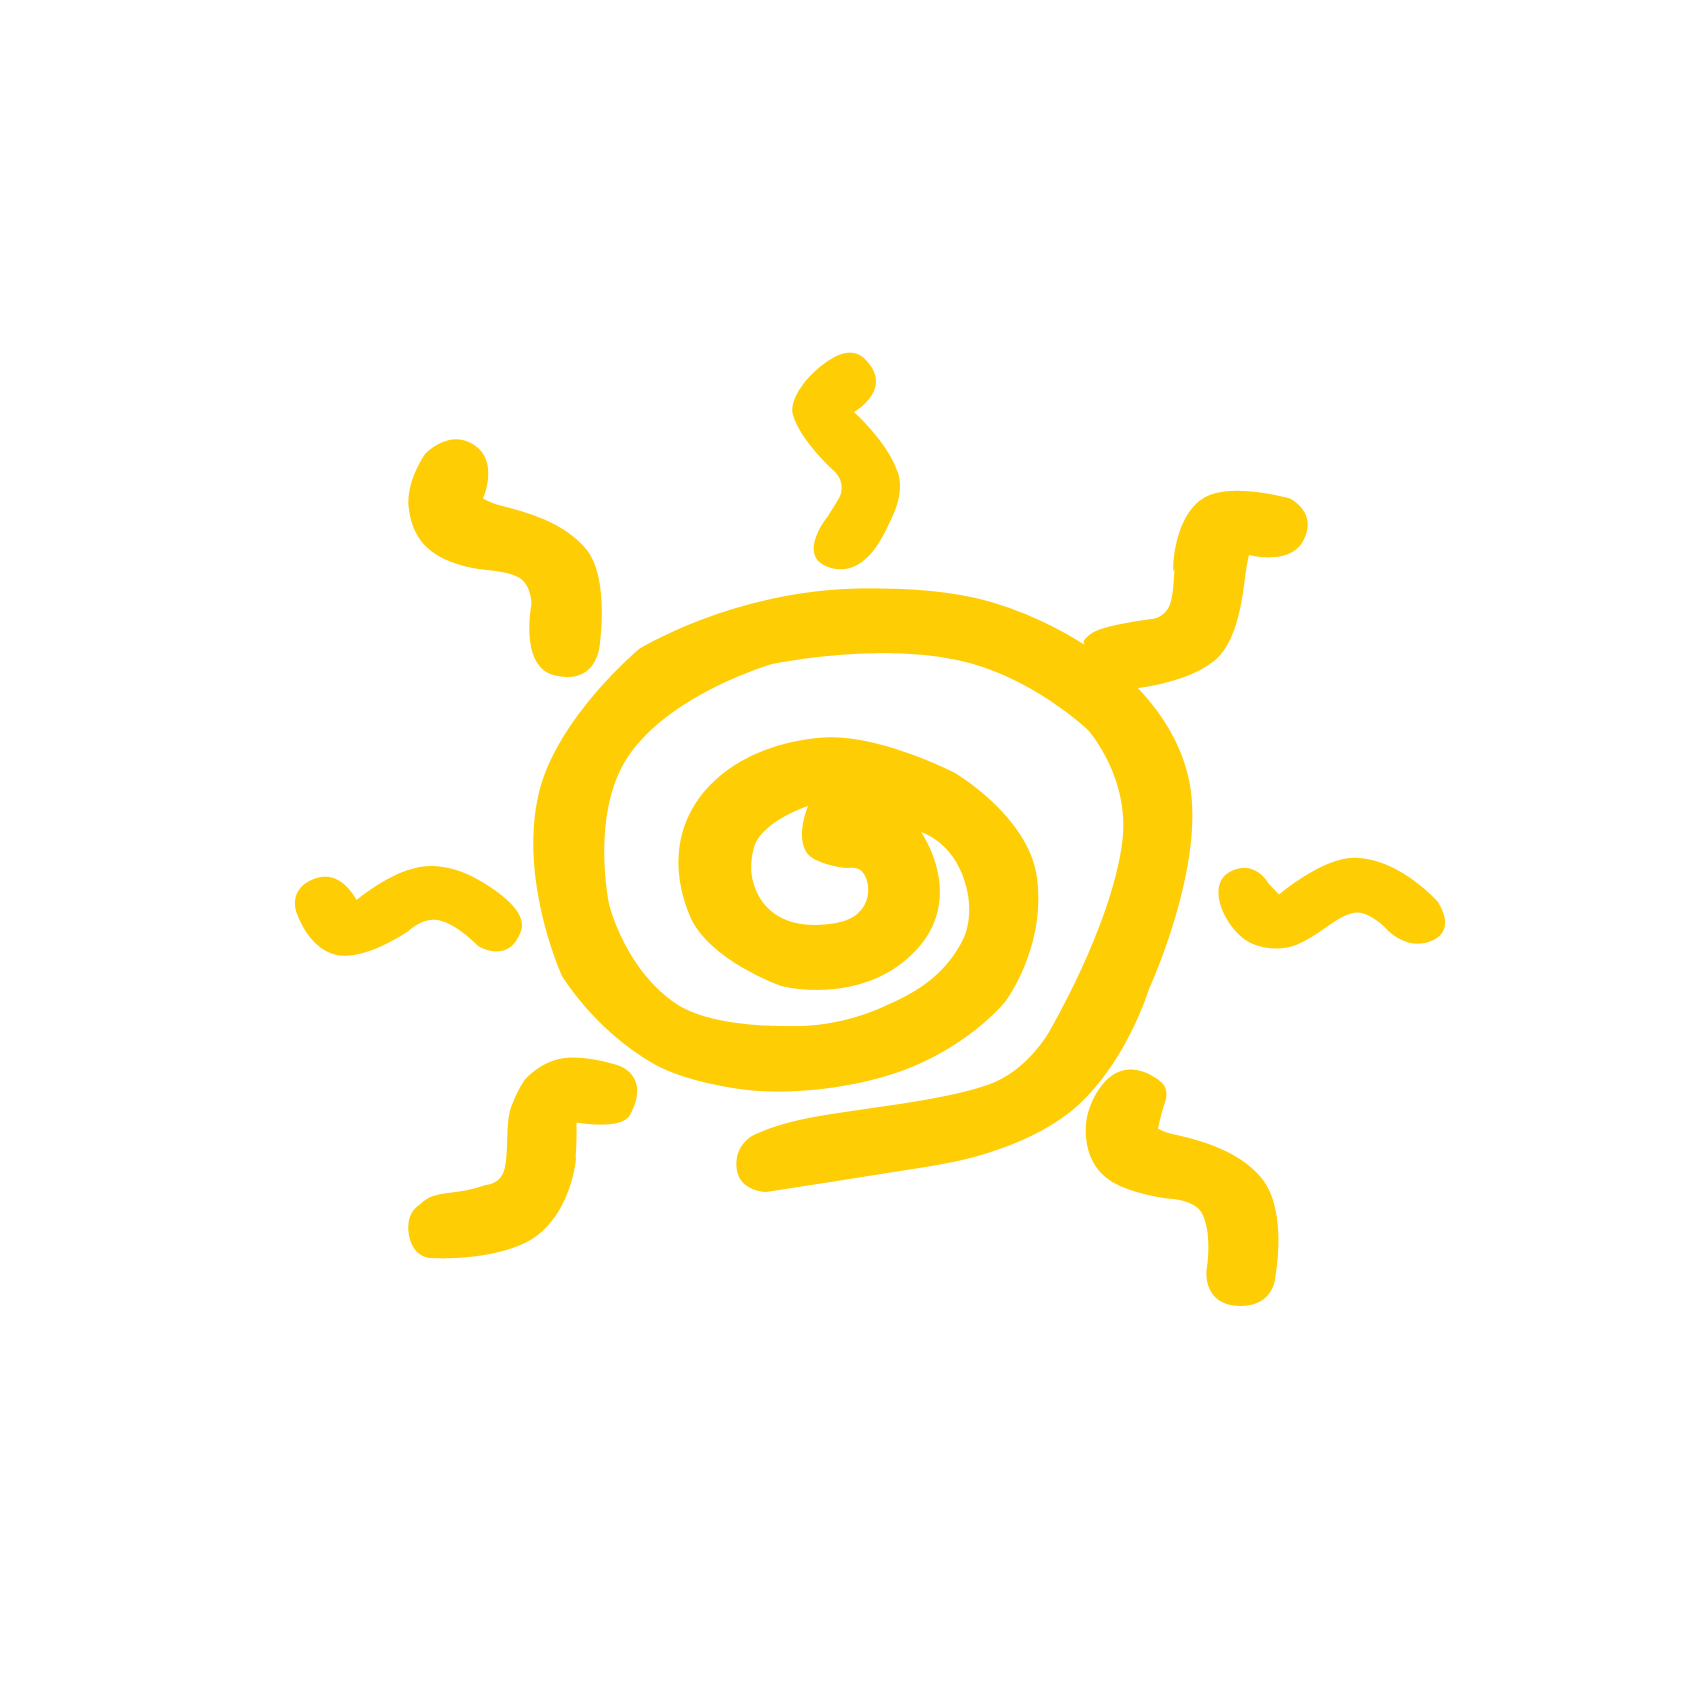 Sun cartoon png. Yellow drawing clip art